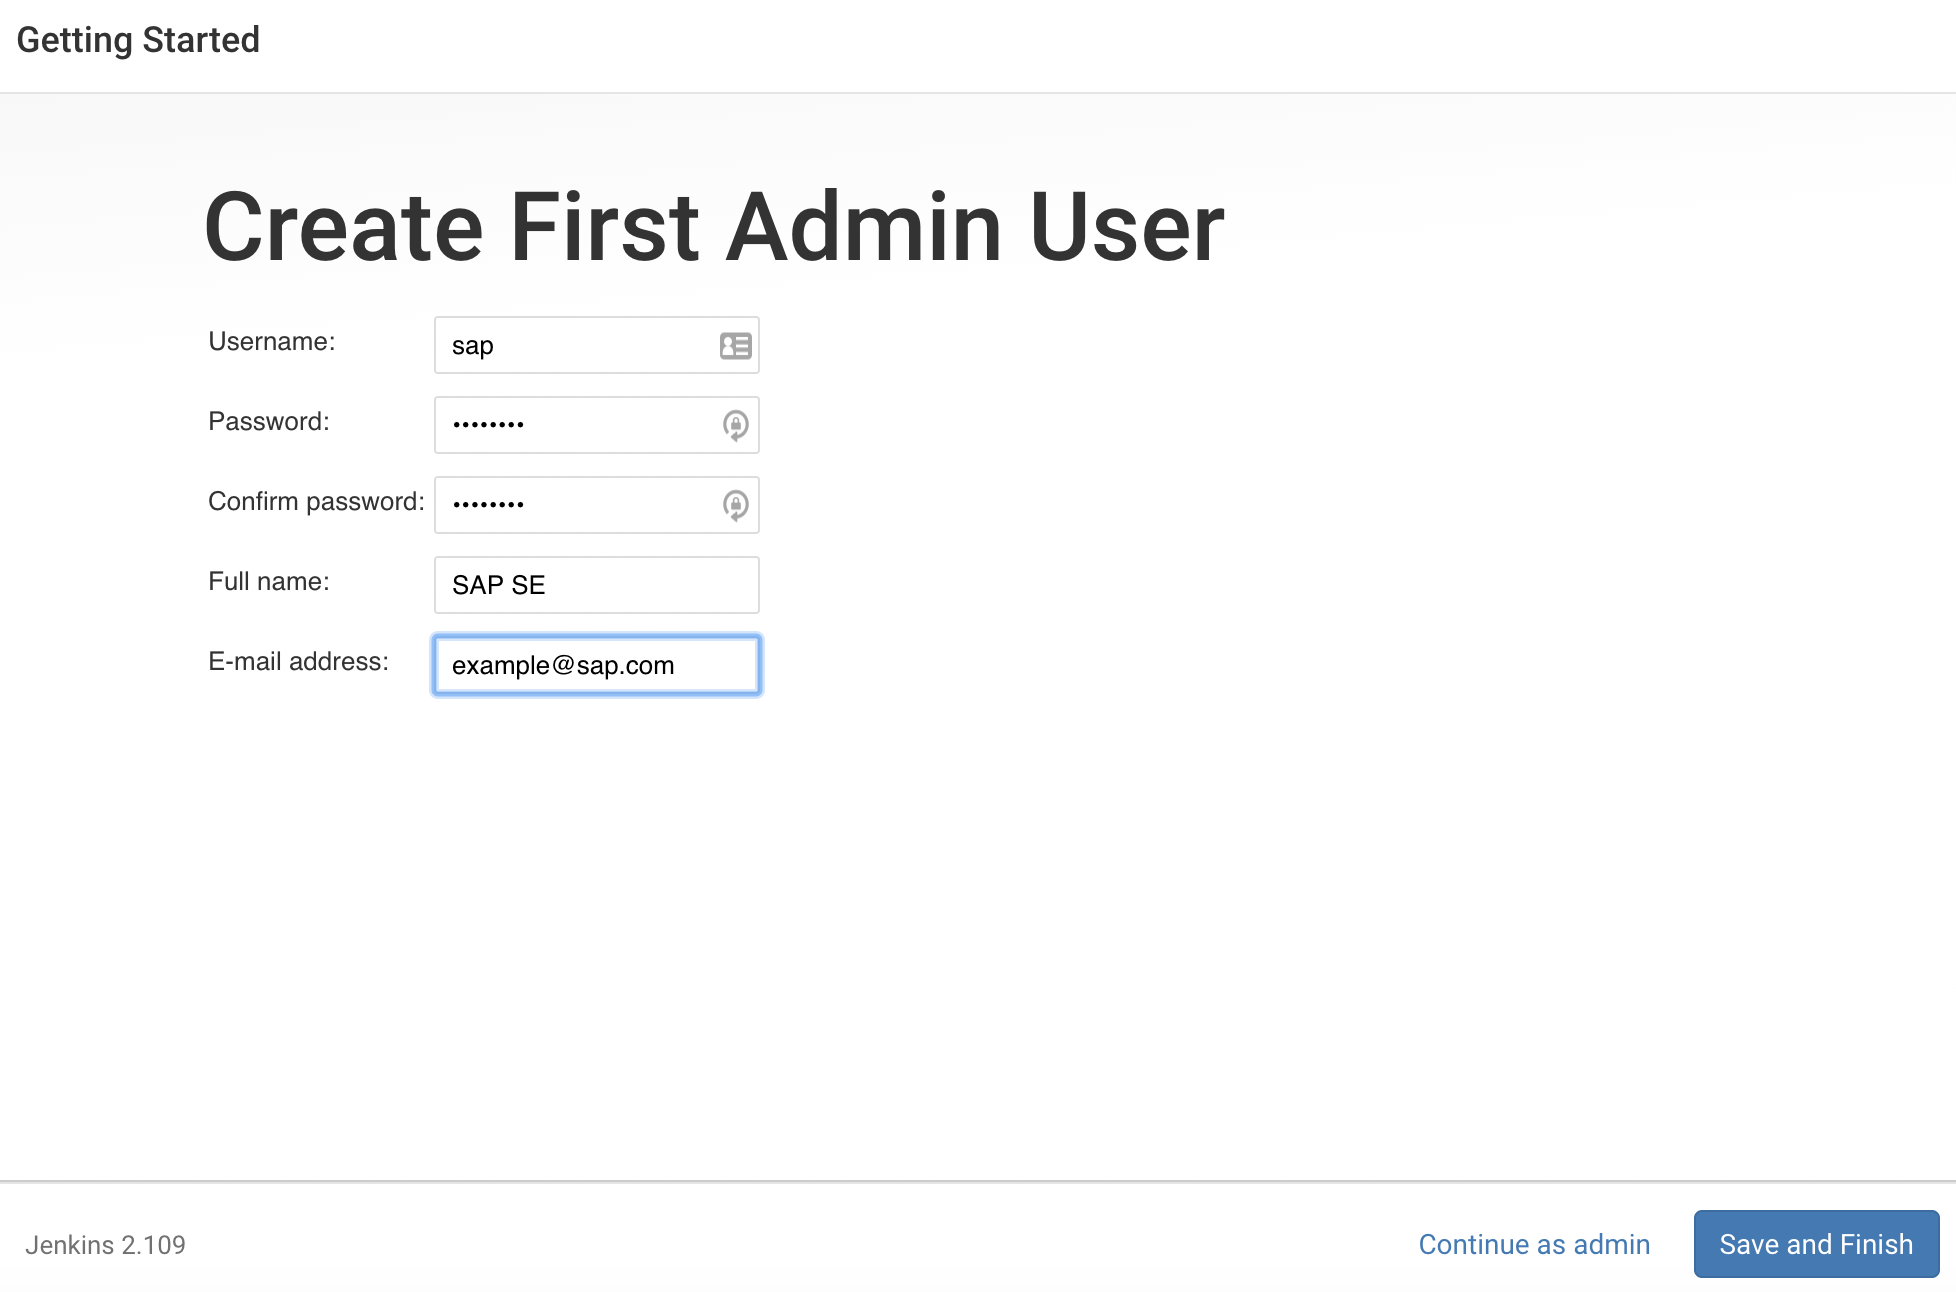 Figure%205%3A%20Creating%20an%20admin%20user%20in%20Jenkins